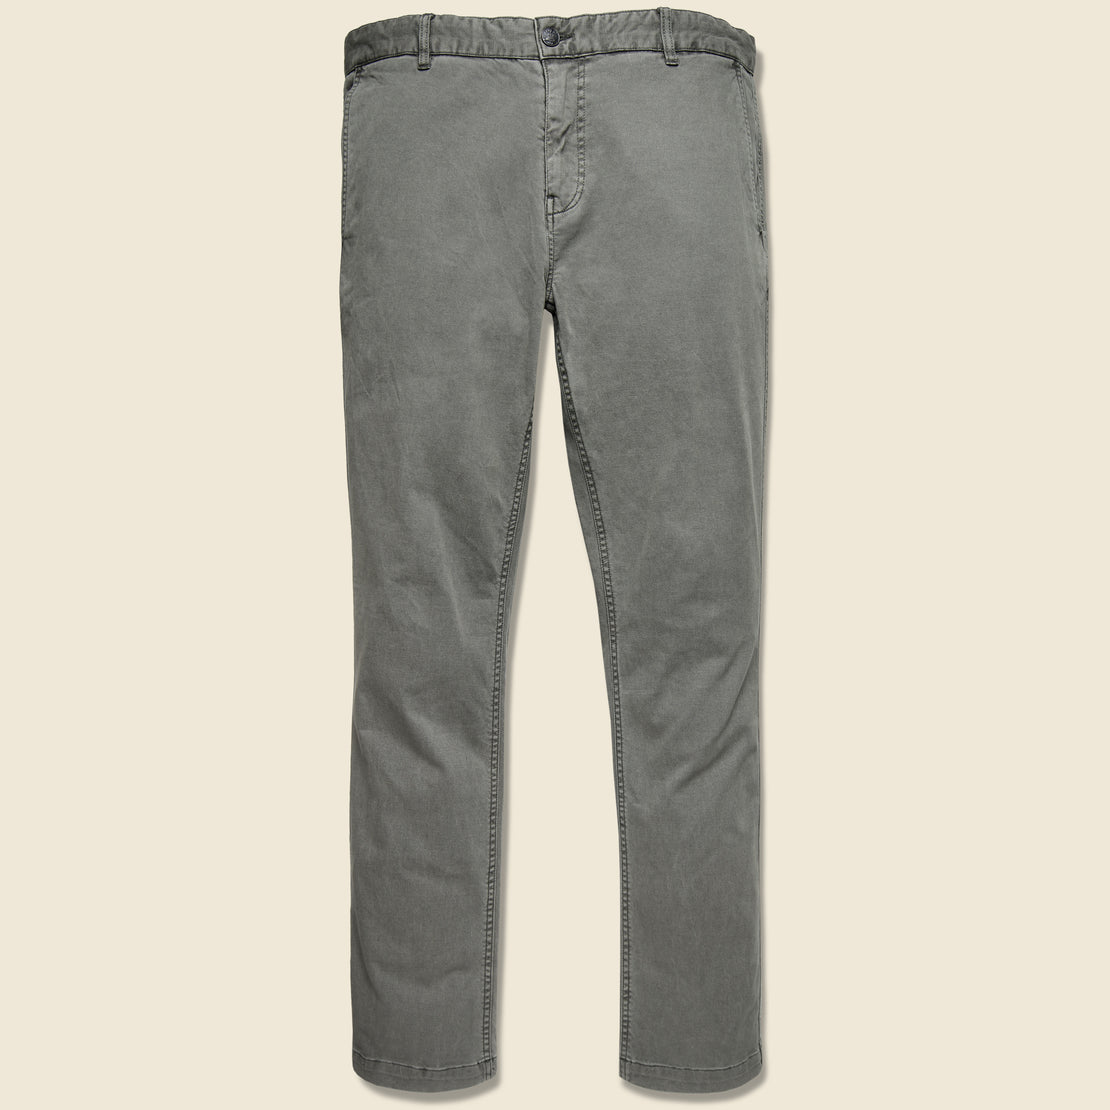 Faherty Stretch Canvas Trouser - Ash